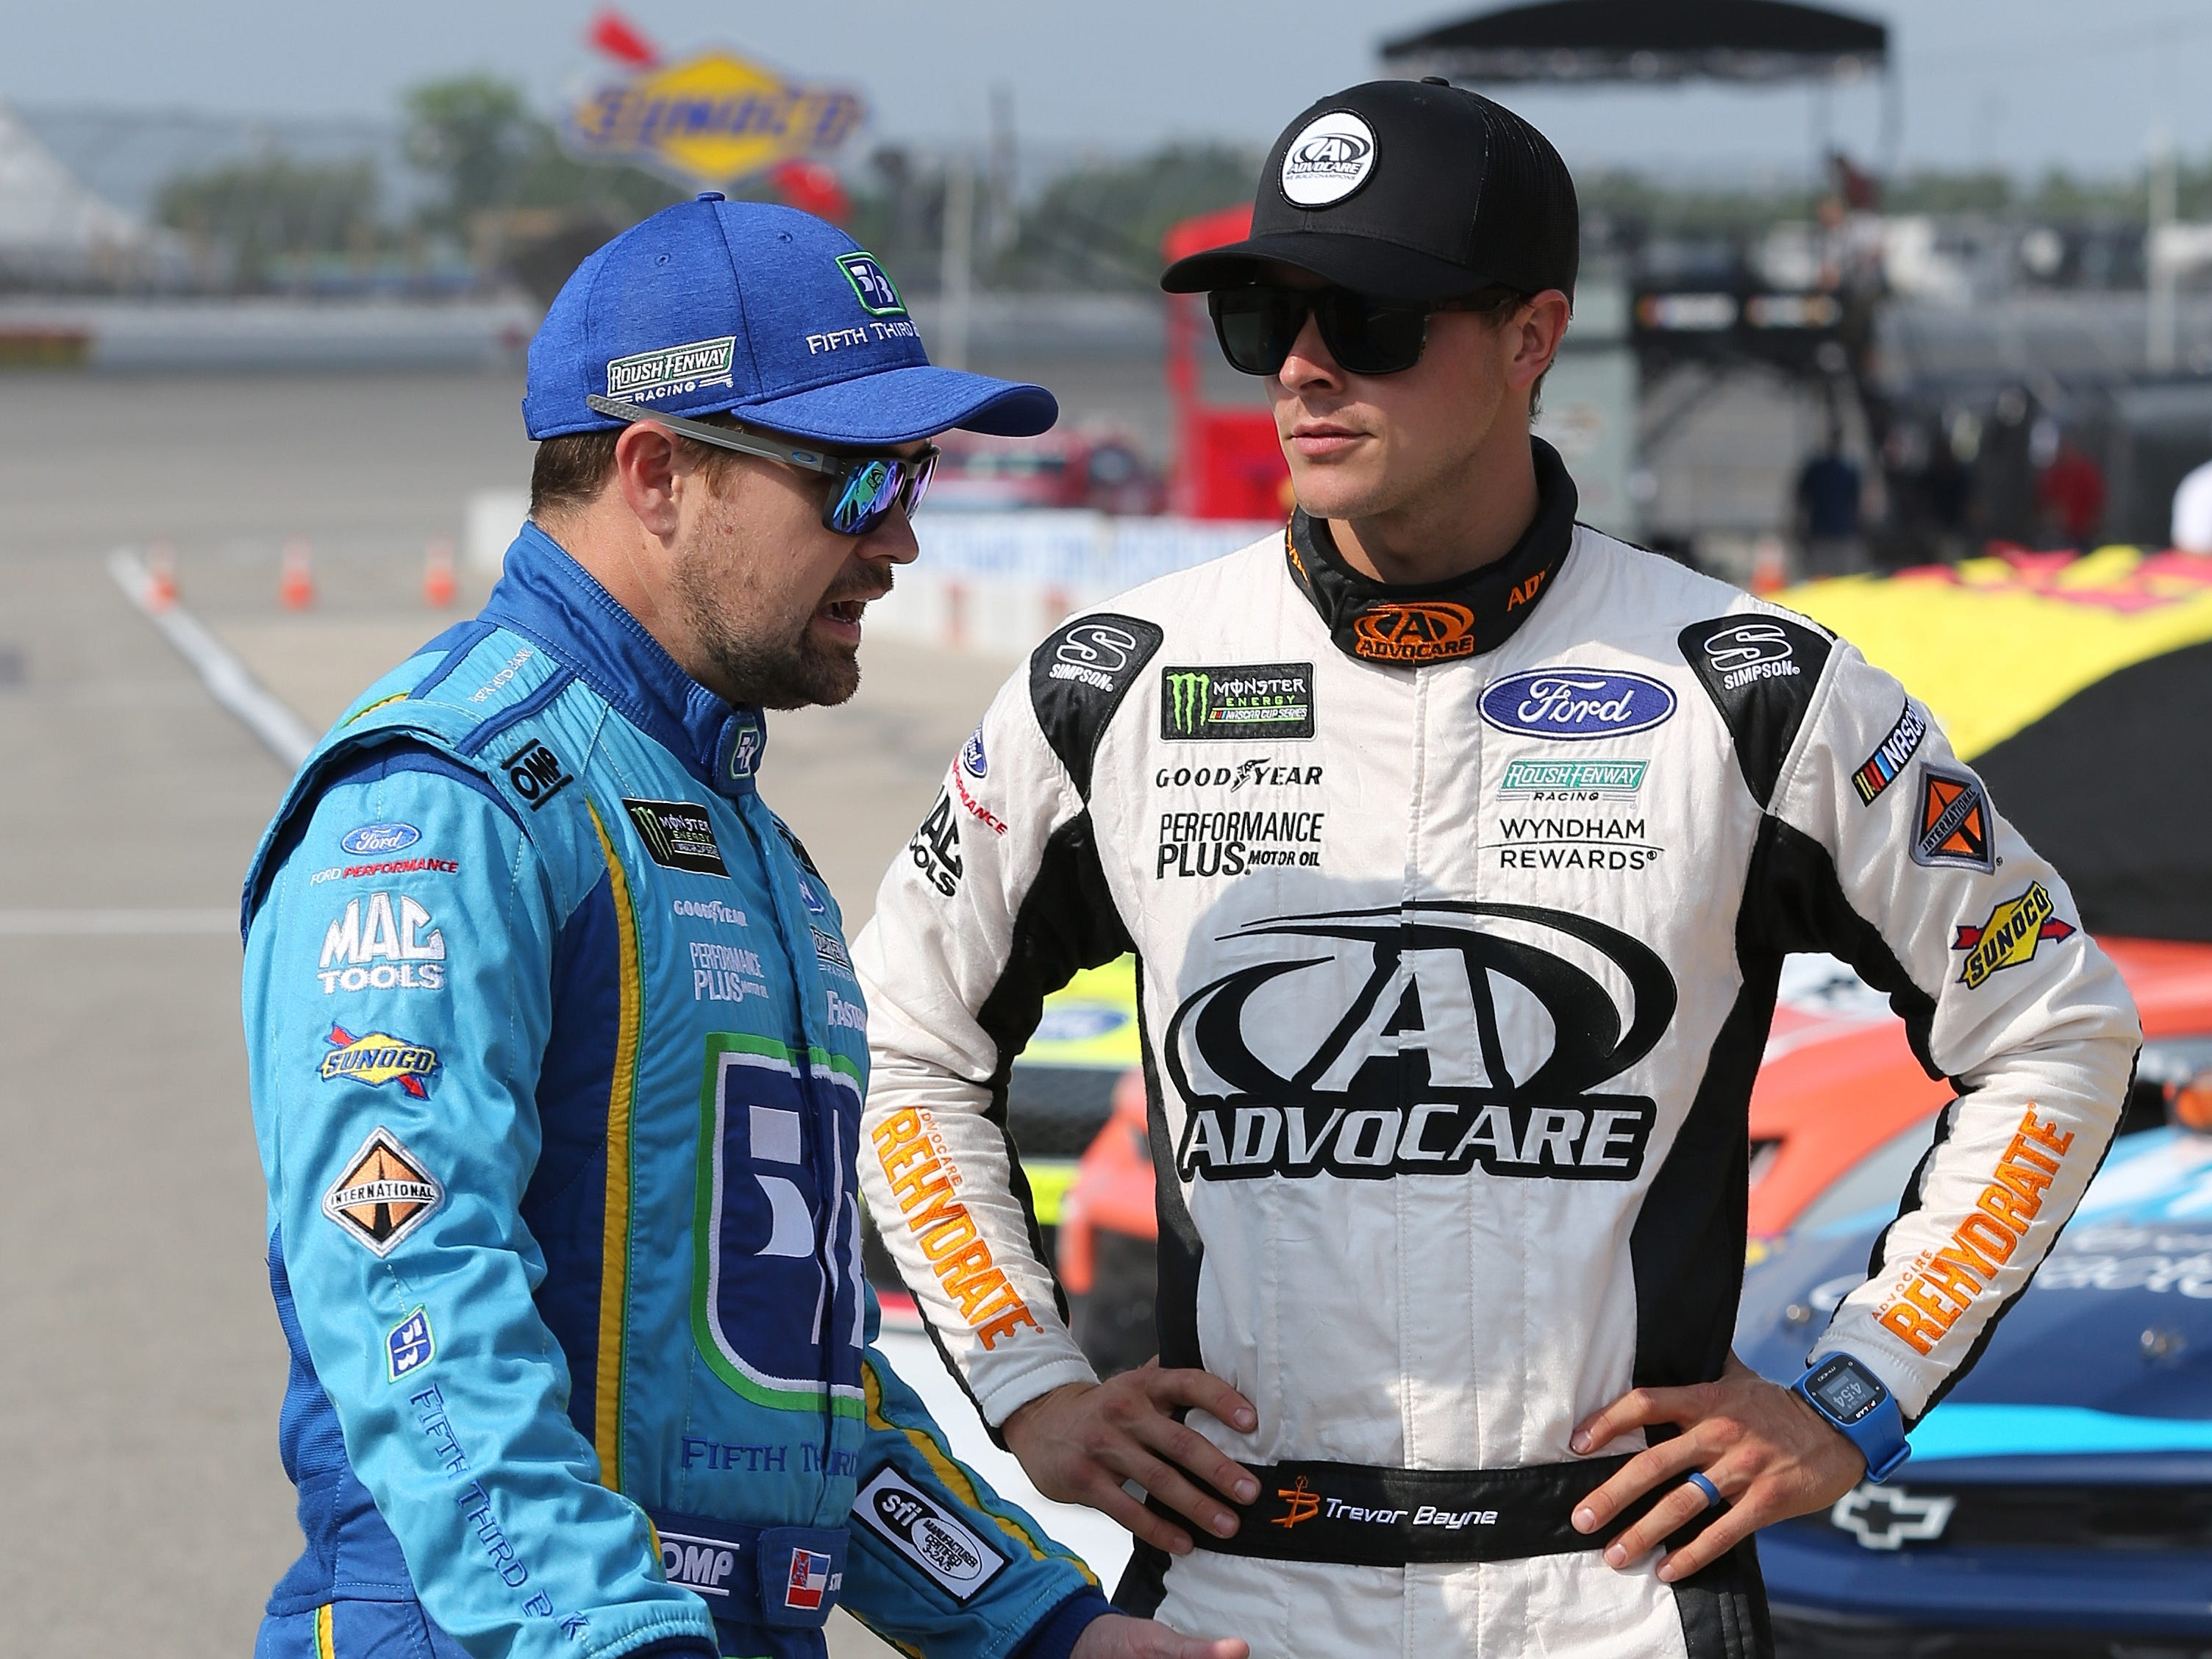 Ricky Stenhouse Jr., driver of the #17 Fifth Third Bank Ford, and Trevor Bayne, driver of the #6 AdvoCare Rehydrate Ford, talk during qualifying for the Monster Energy NASCAR Cup Series Consmers Energy 400 at Michigan International Speedway on August 10, 2018 in Brooklyn, Michigan.